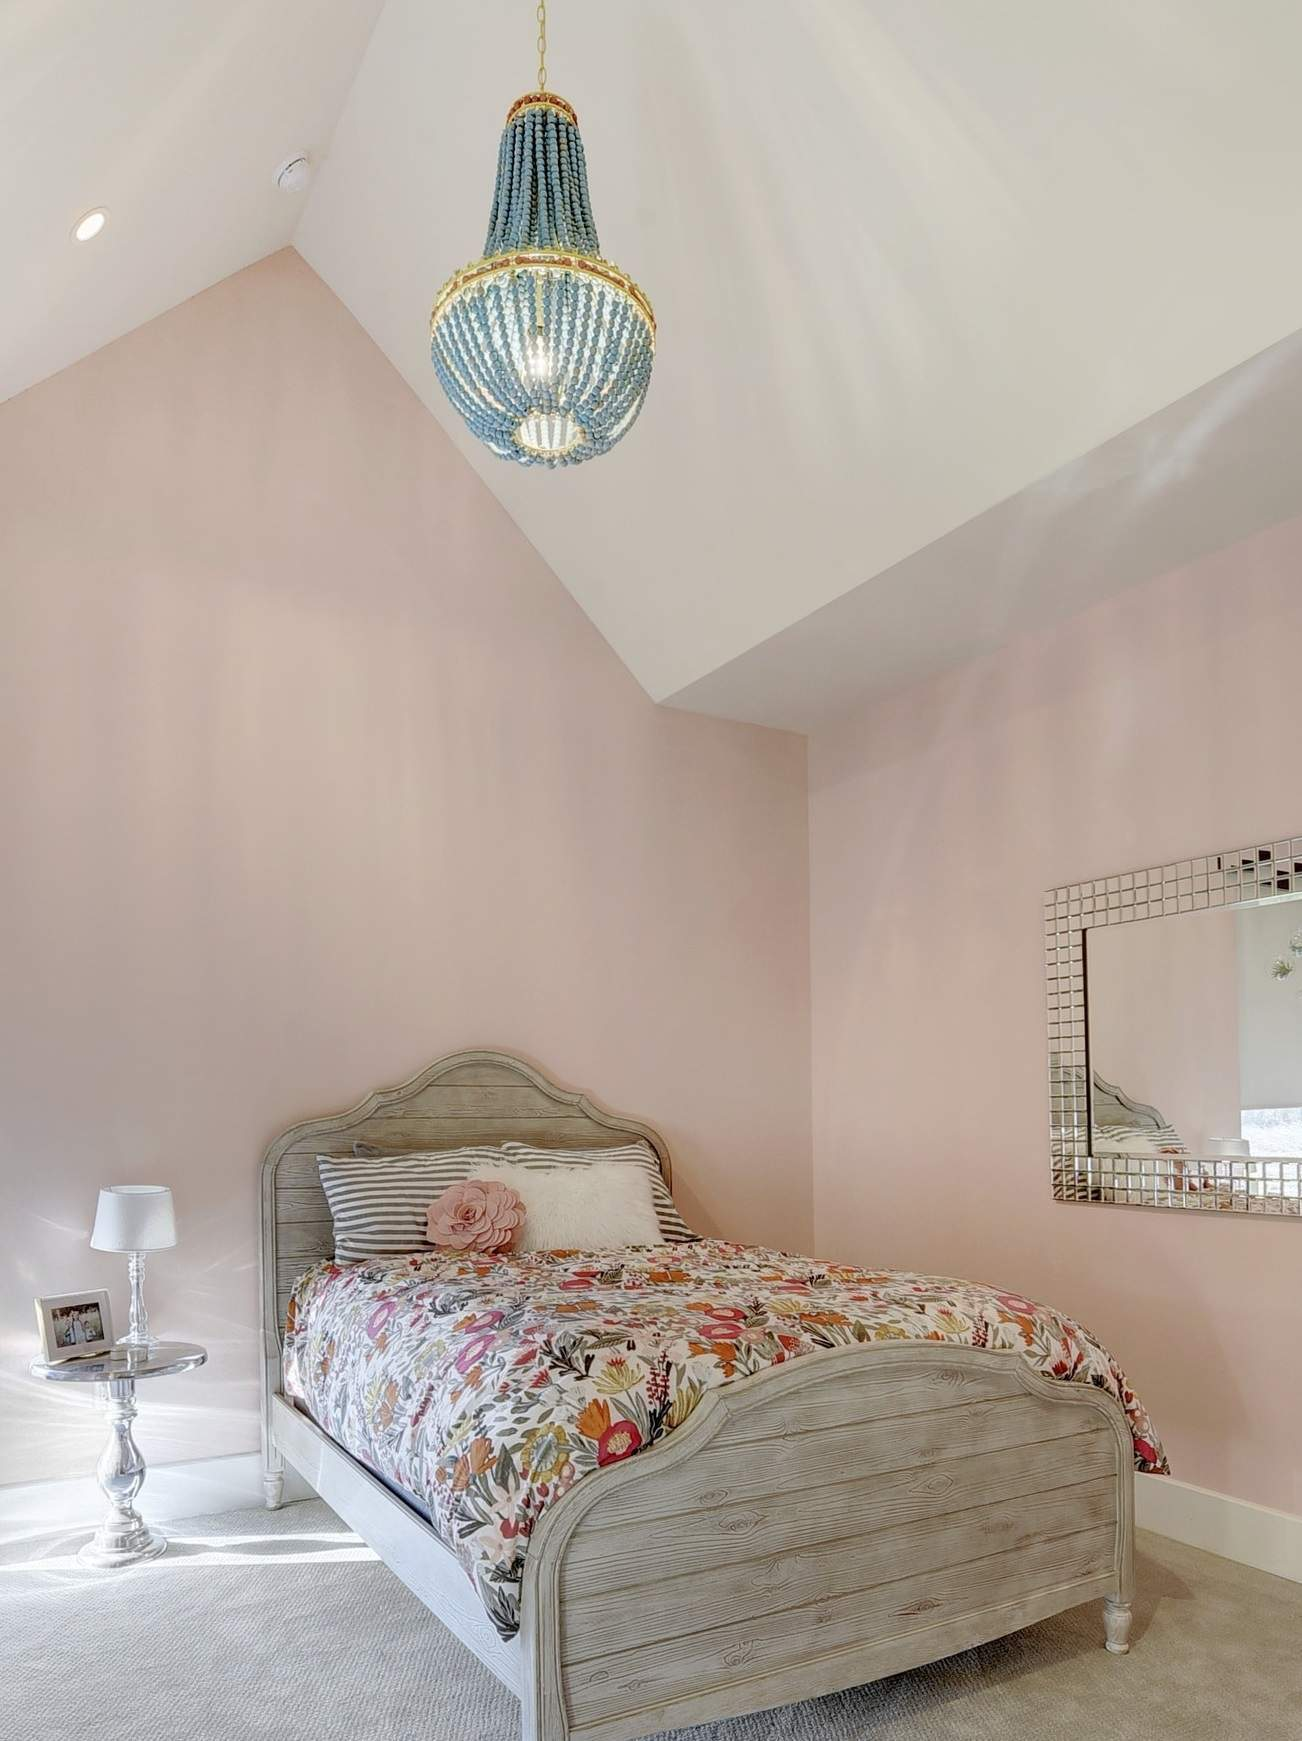 bedroom interior design | bedroom with vaulted ceiling and chandelier | austin, texas